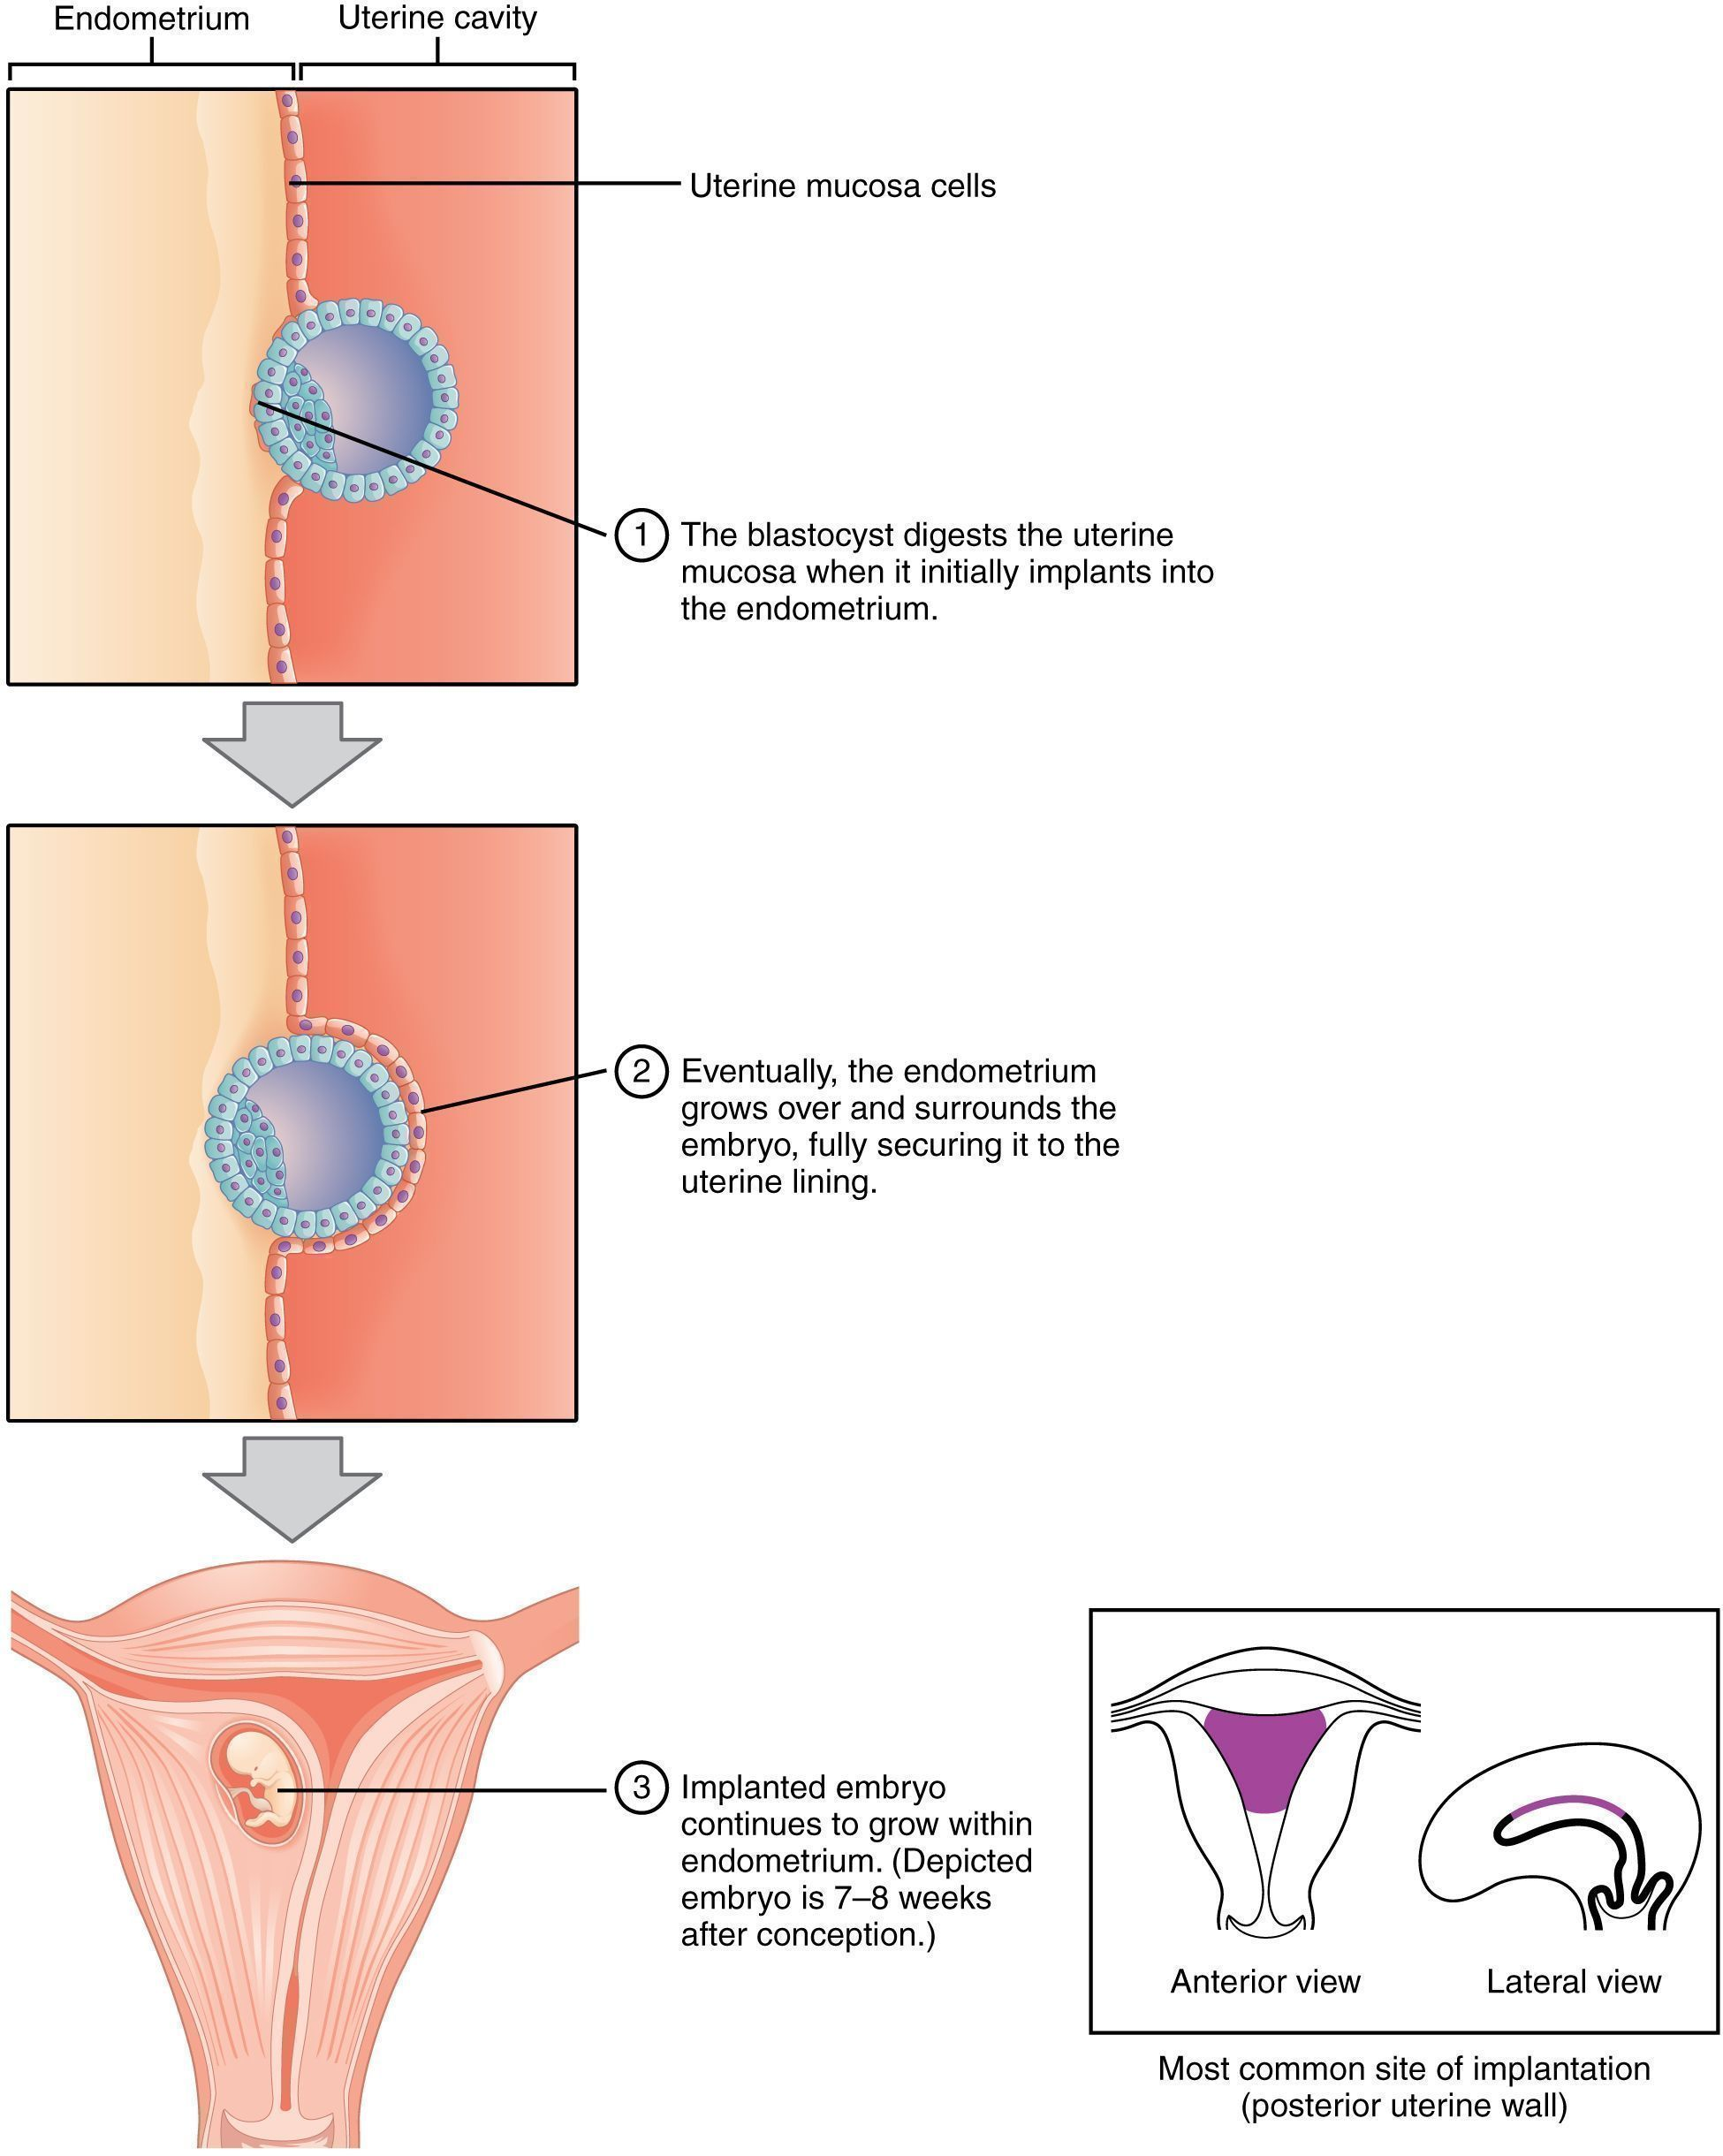 In humans, implantation is the very early stage of pregnancy at which the conceptus adheres to the wall of the uterus. At this stage of prenatal development, the conceptus is a blastocyst.